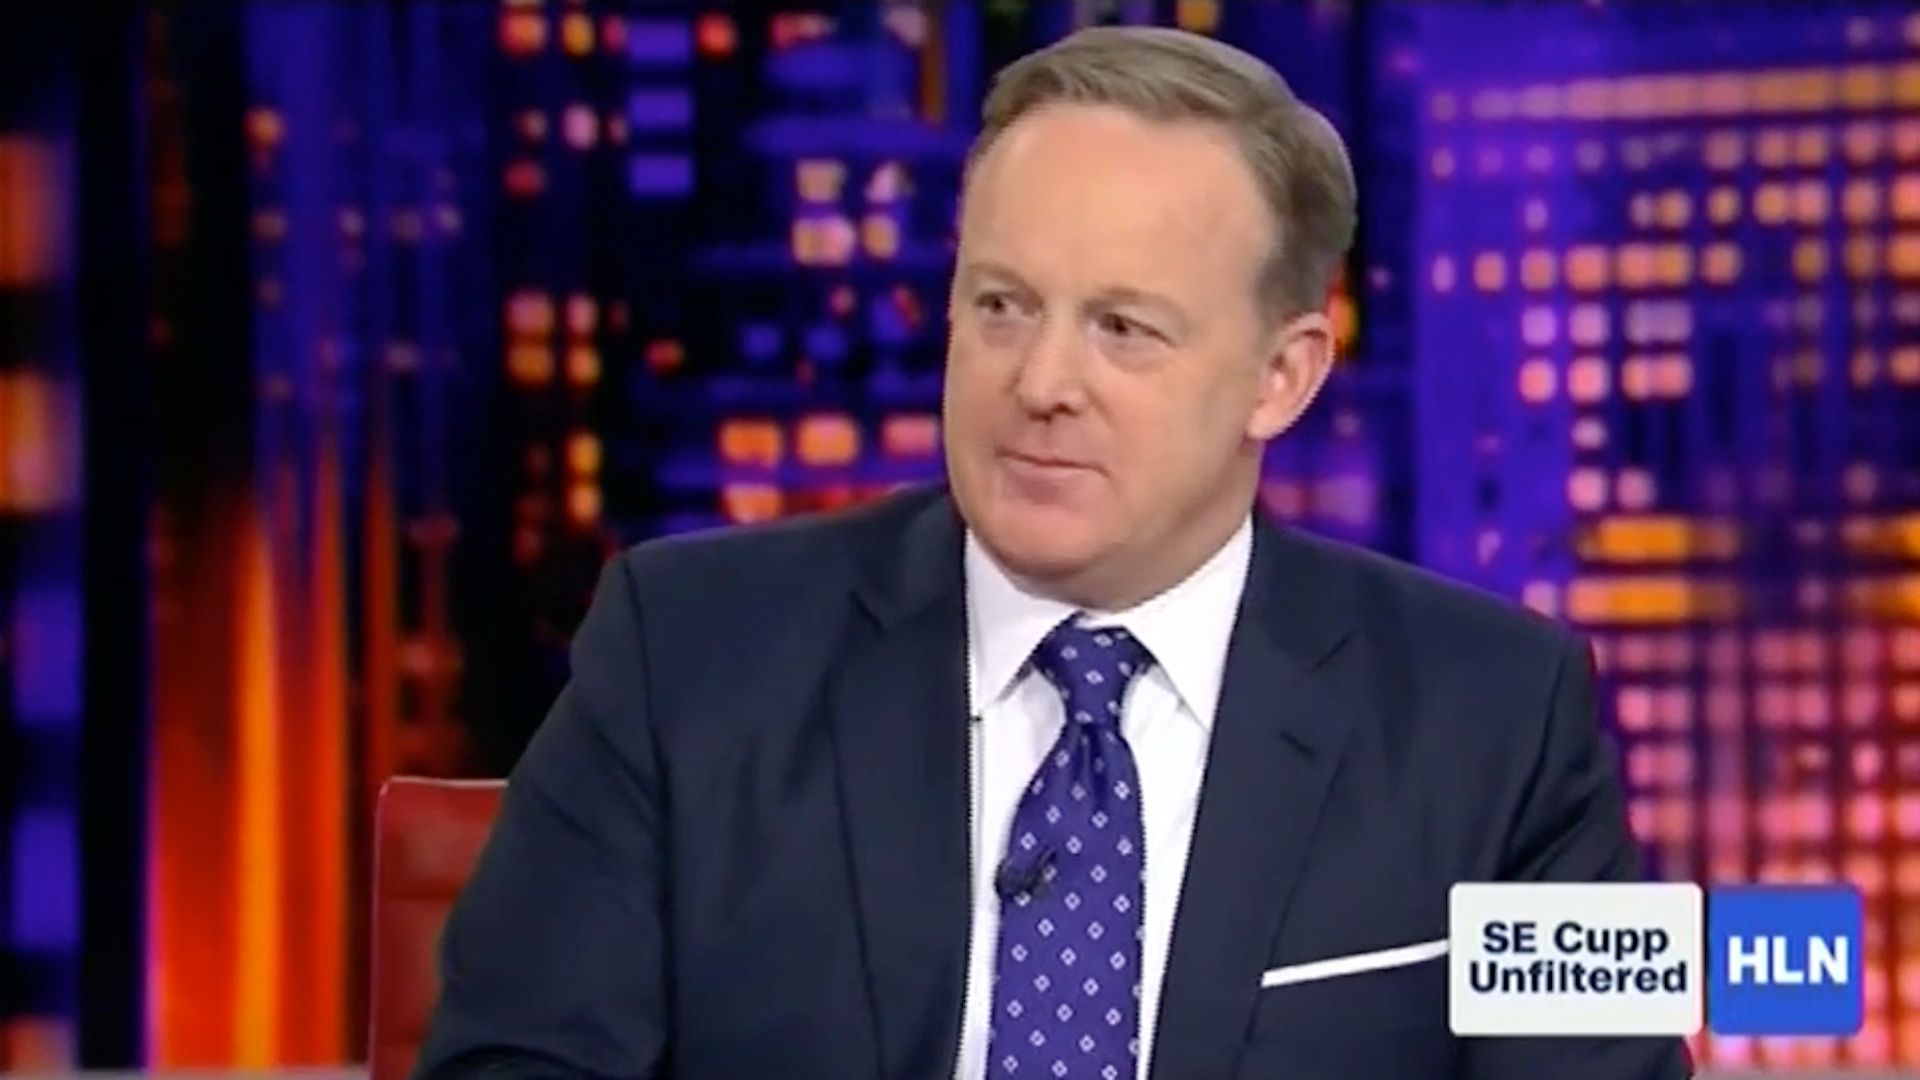 Sean Spicer: Nothing 'Inappropriate or Illegal' Was Done During Campaign